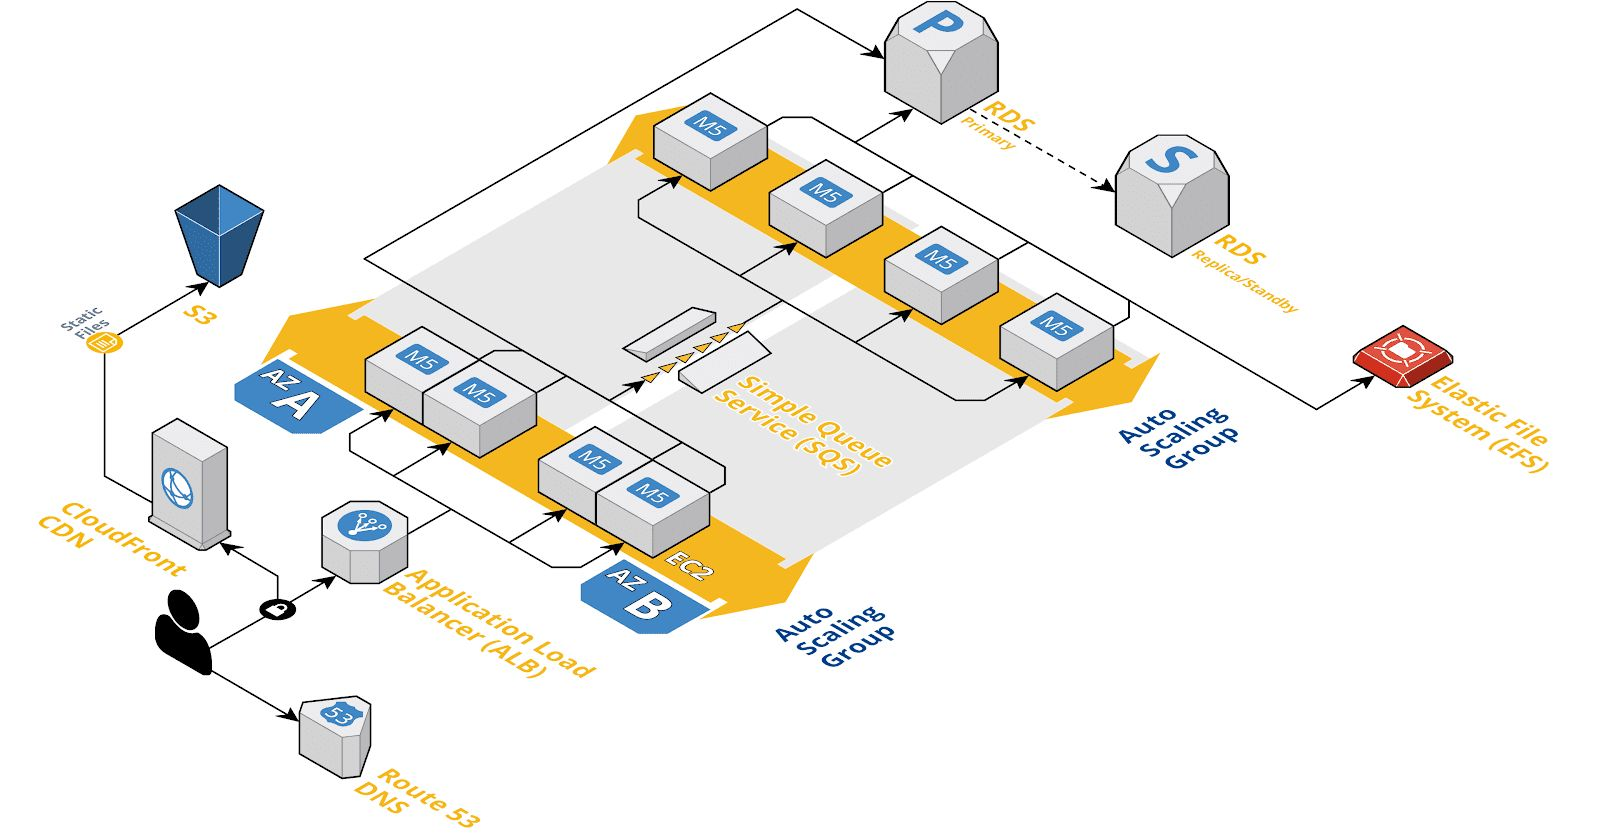 /top-14-must-haves-for-your-aws-architecture-checklist-0c2q35sv feature image